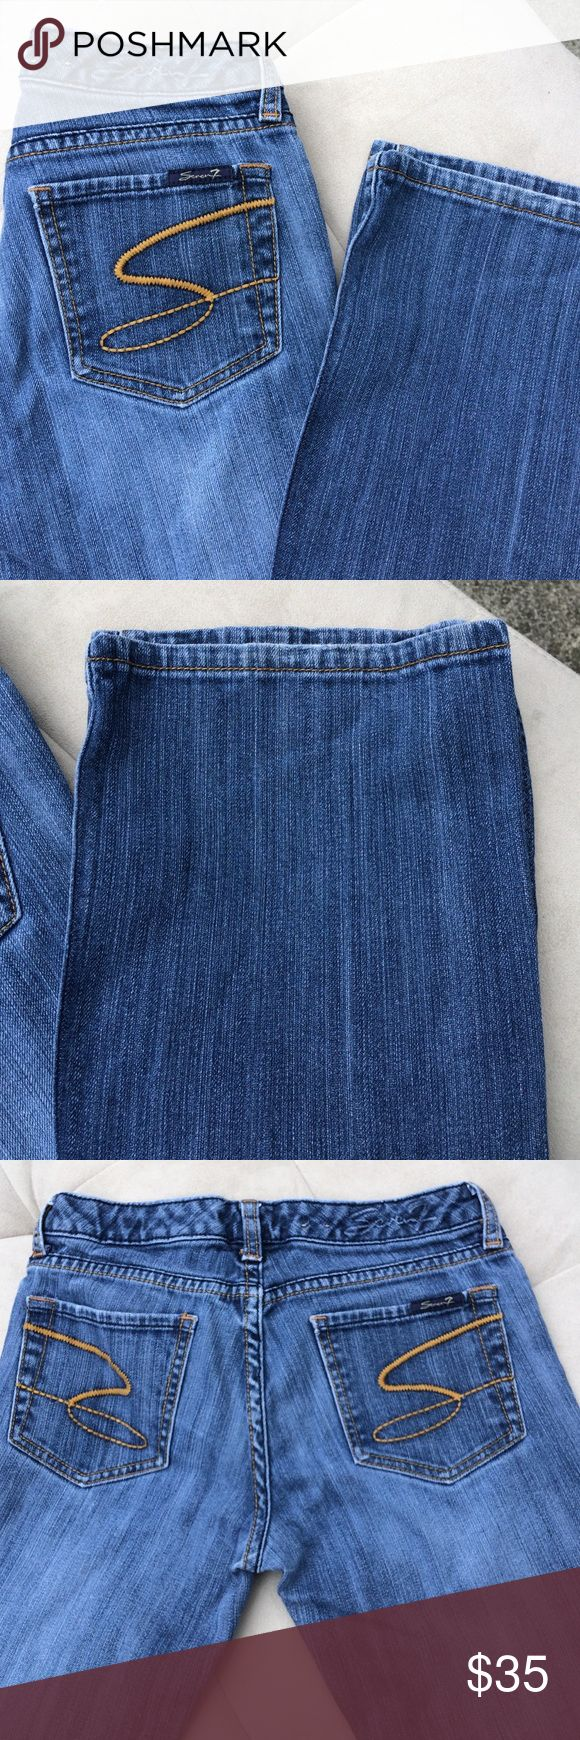 🚛MOVING SALE🚛 MAKE OFFER🚛 seven jeans Great condition size 27 flare leg Seven7 Jeans Flare & Wide Leg